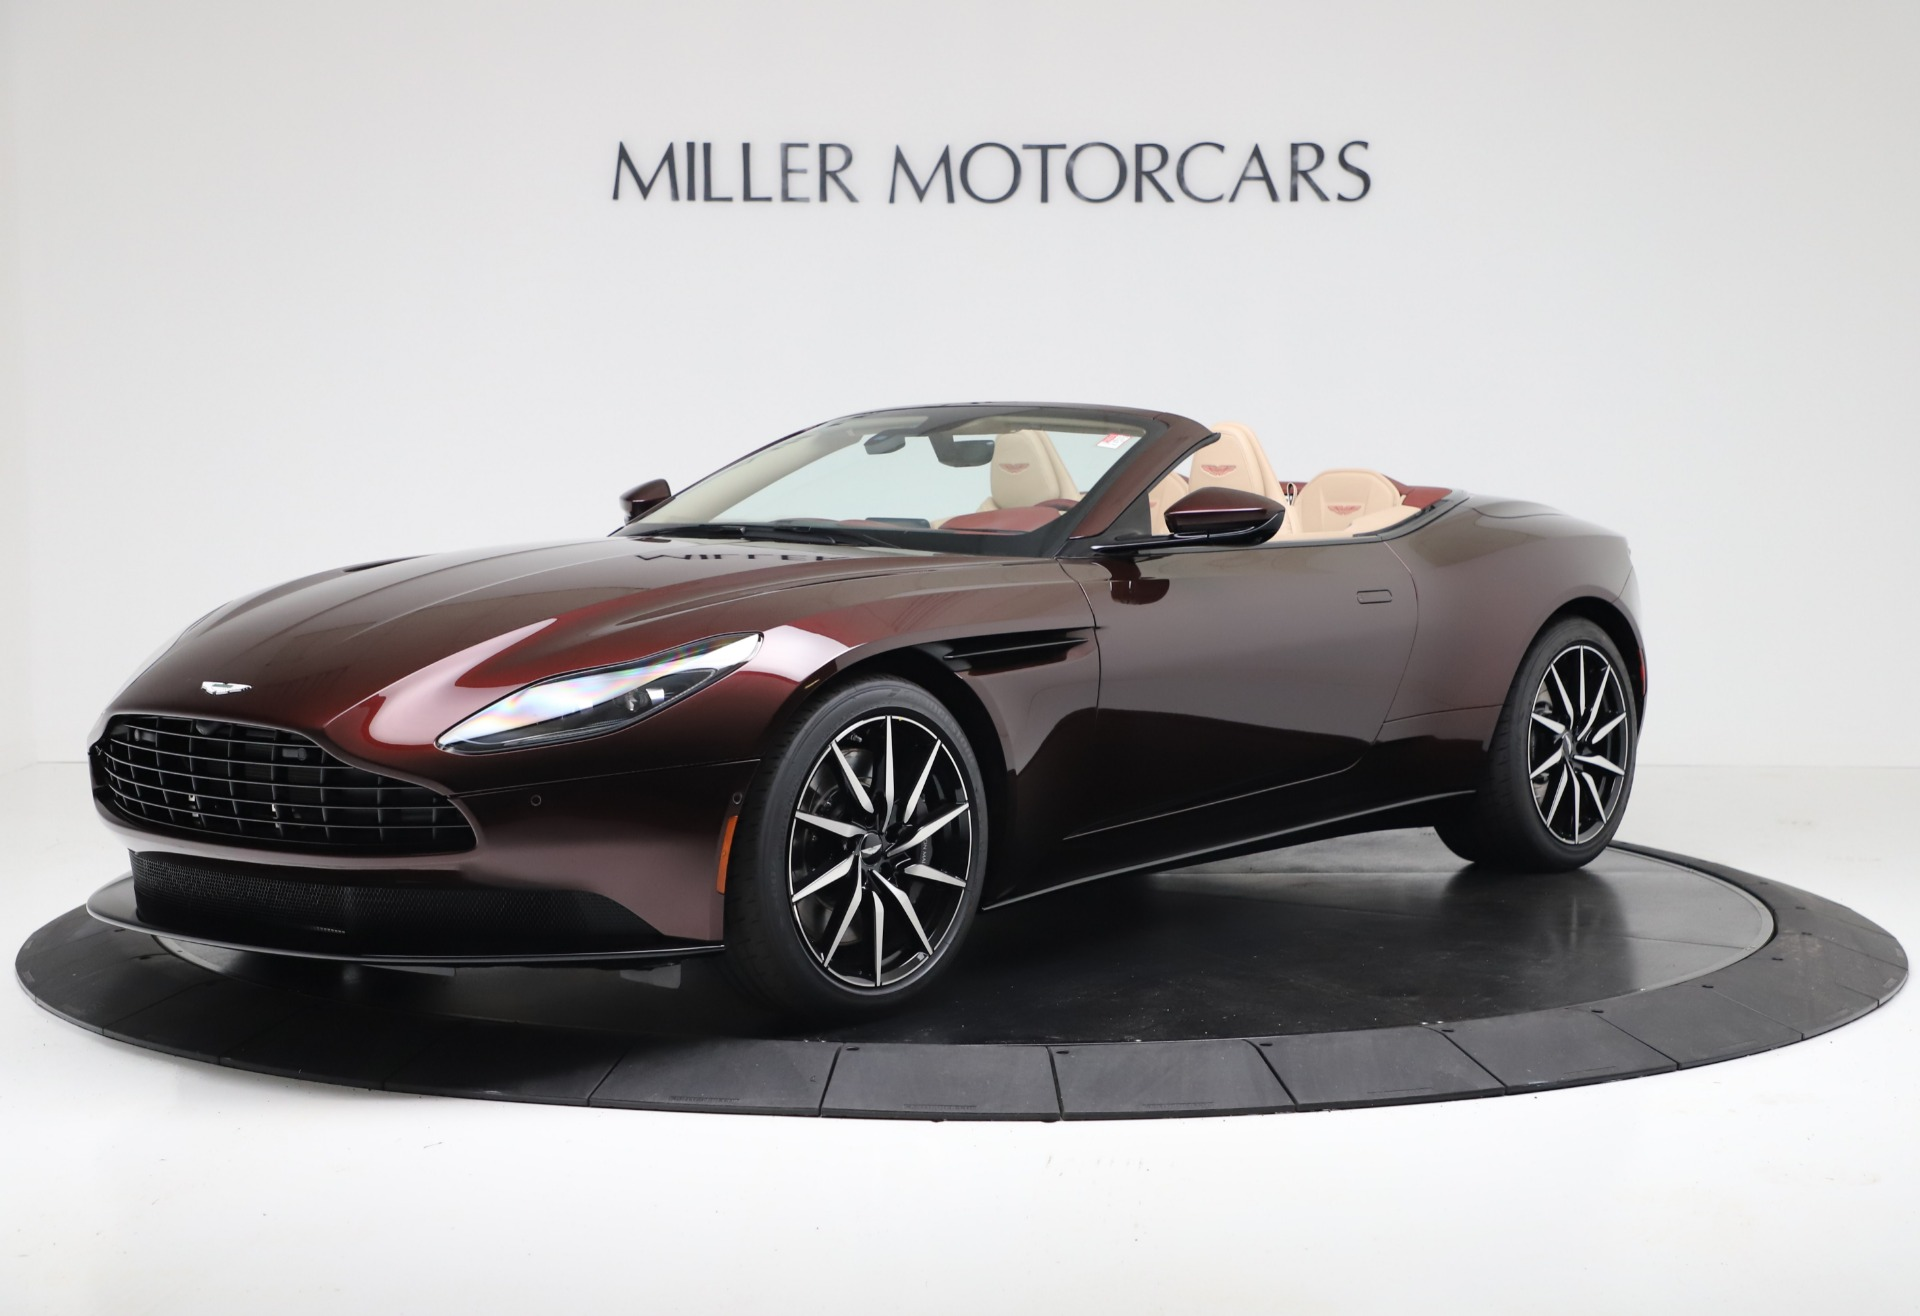 Used 2020 Aston Martin DB11 Volante Convertible for sale $223,900 at Rolls-Royce Motor Cars Greenwich in Greenwich CT 06830 1